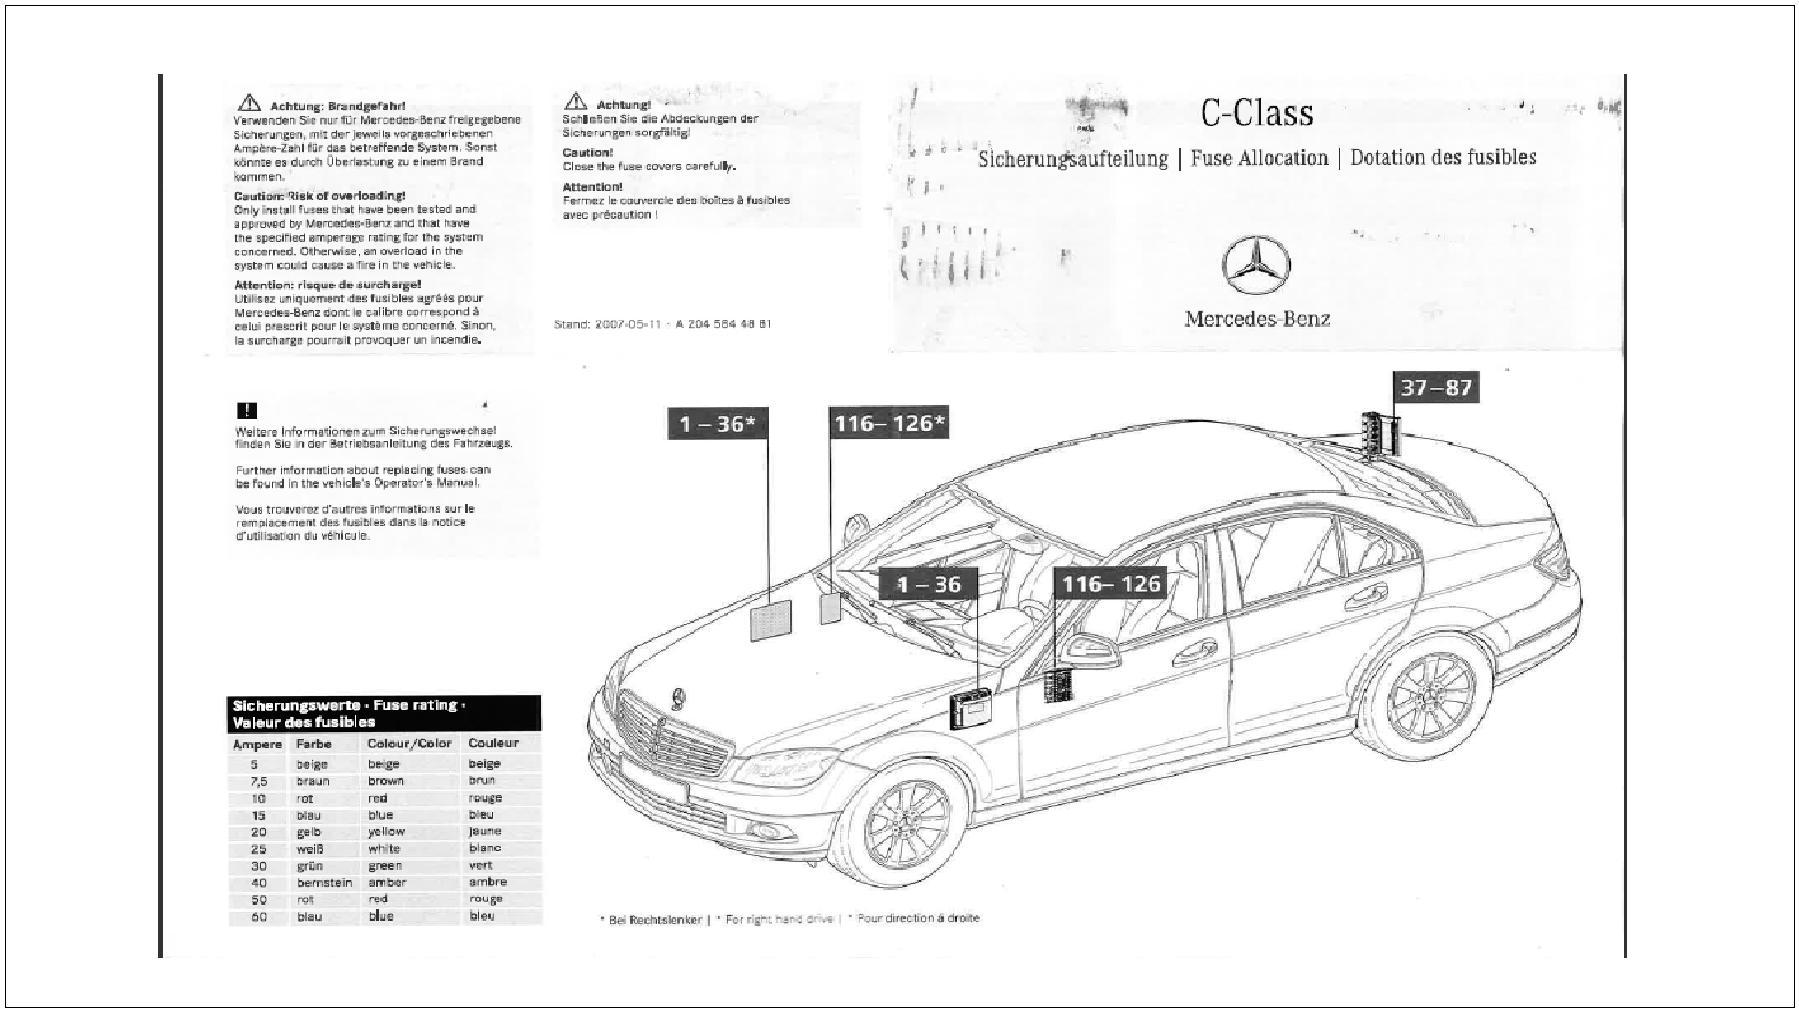 Mercedes Benz C Class w204 Fuse Diagrams and Commonly